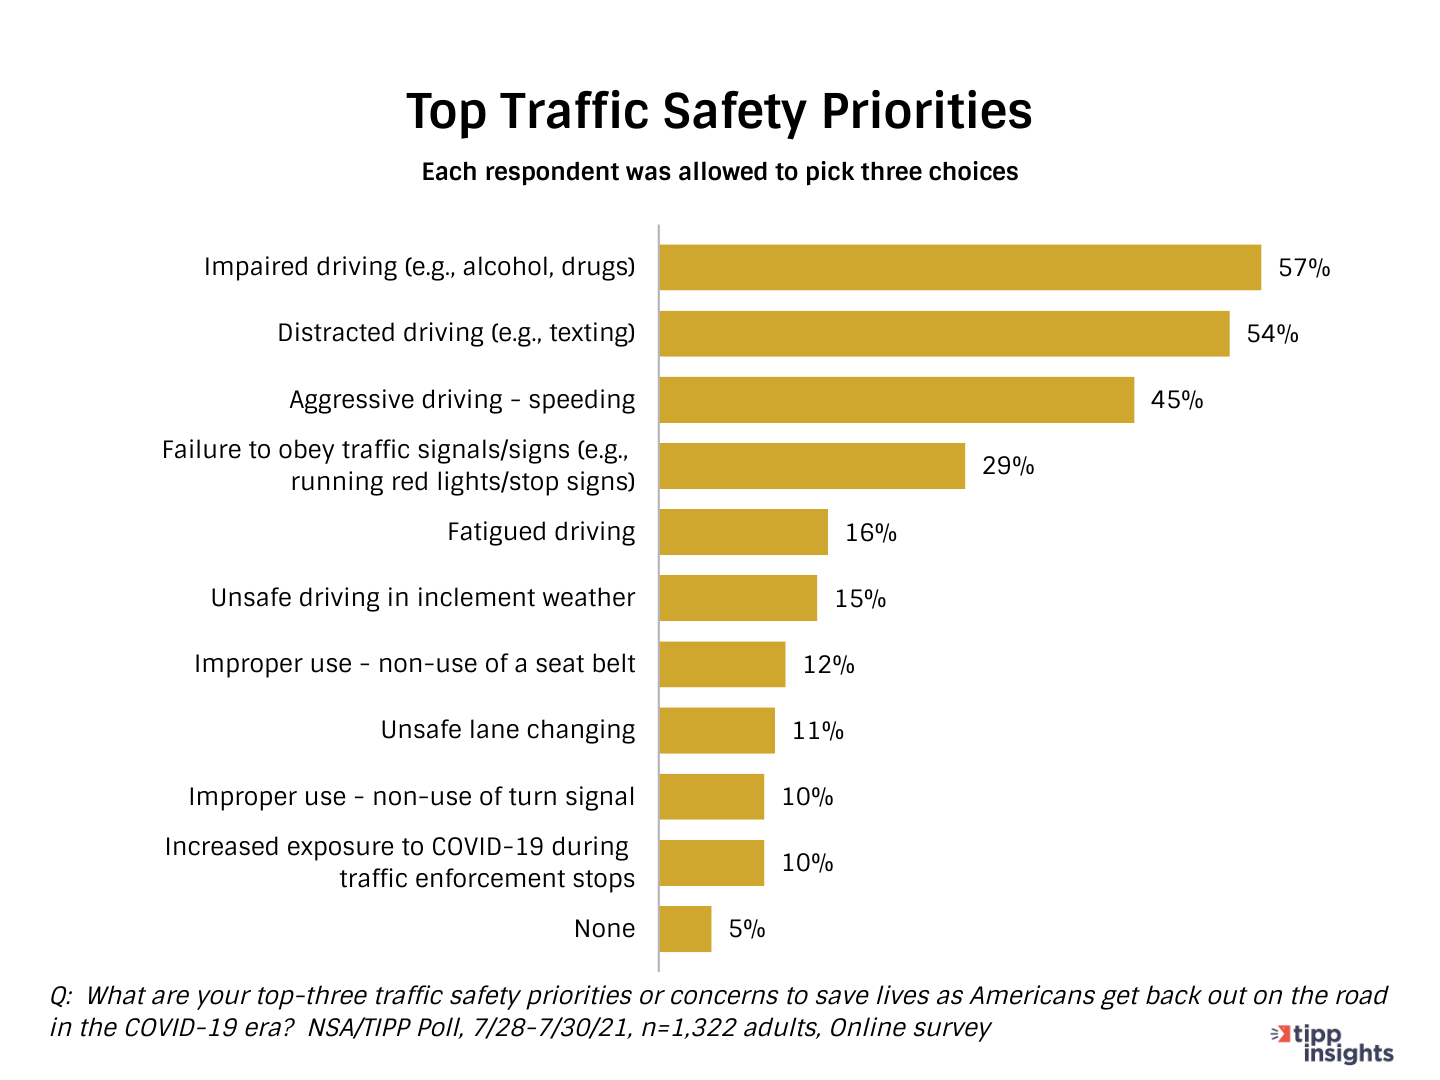 TIPP Poll Results: Americans Top Traffic Safety Priorities while driving